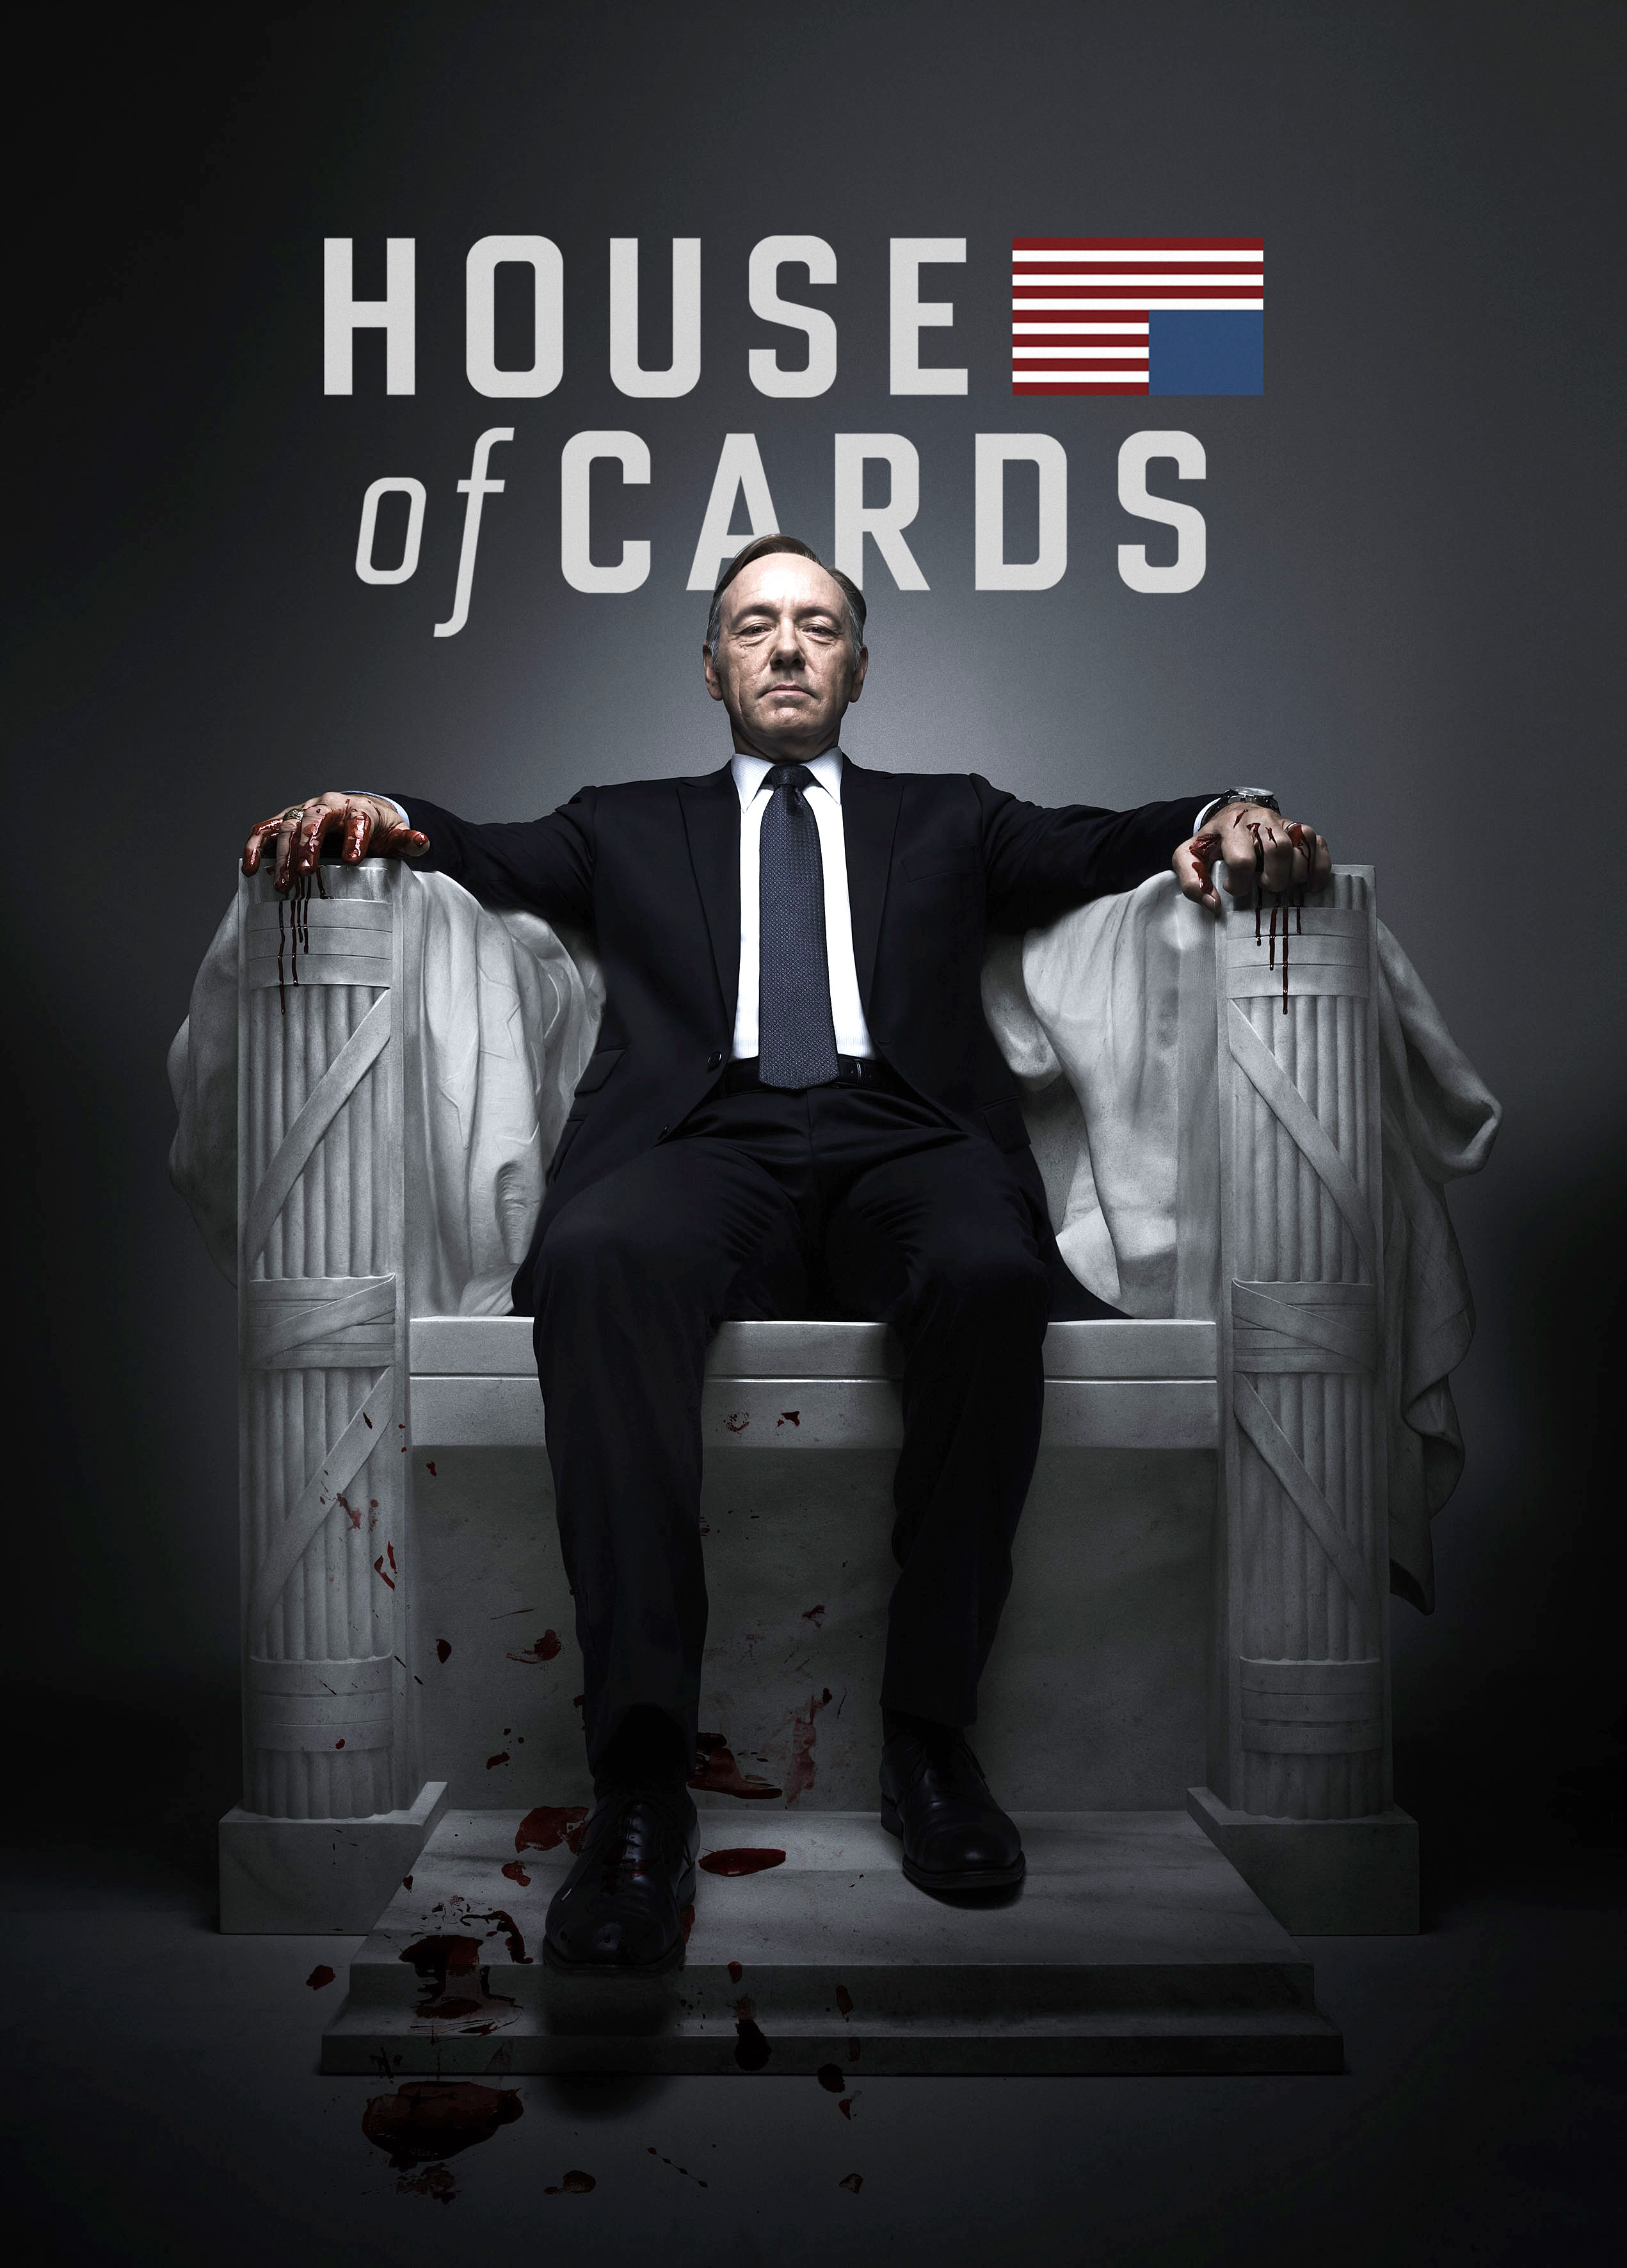 House of Cards (2013) Technical Specifications